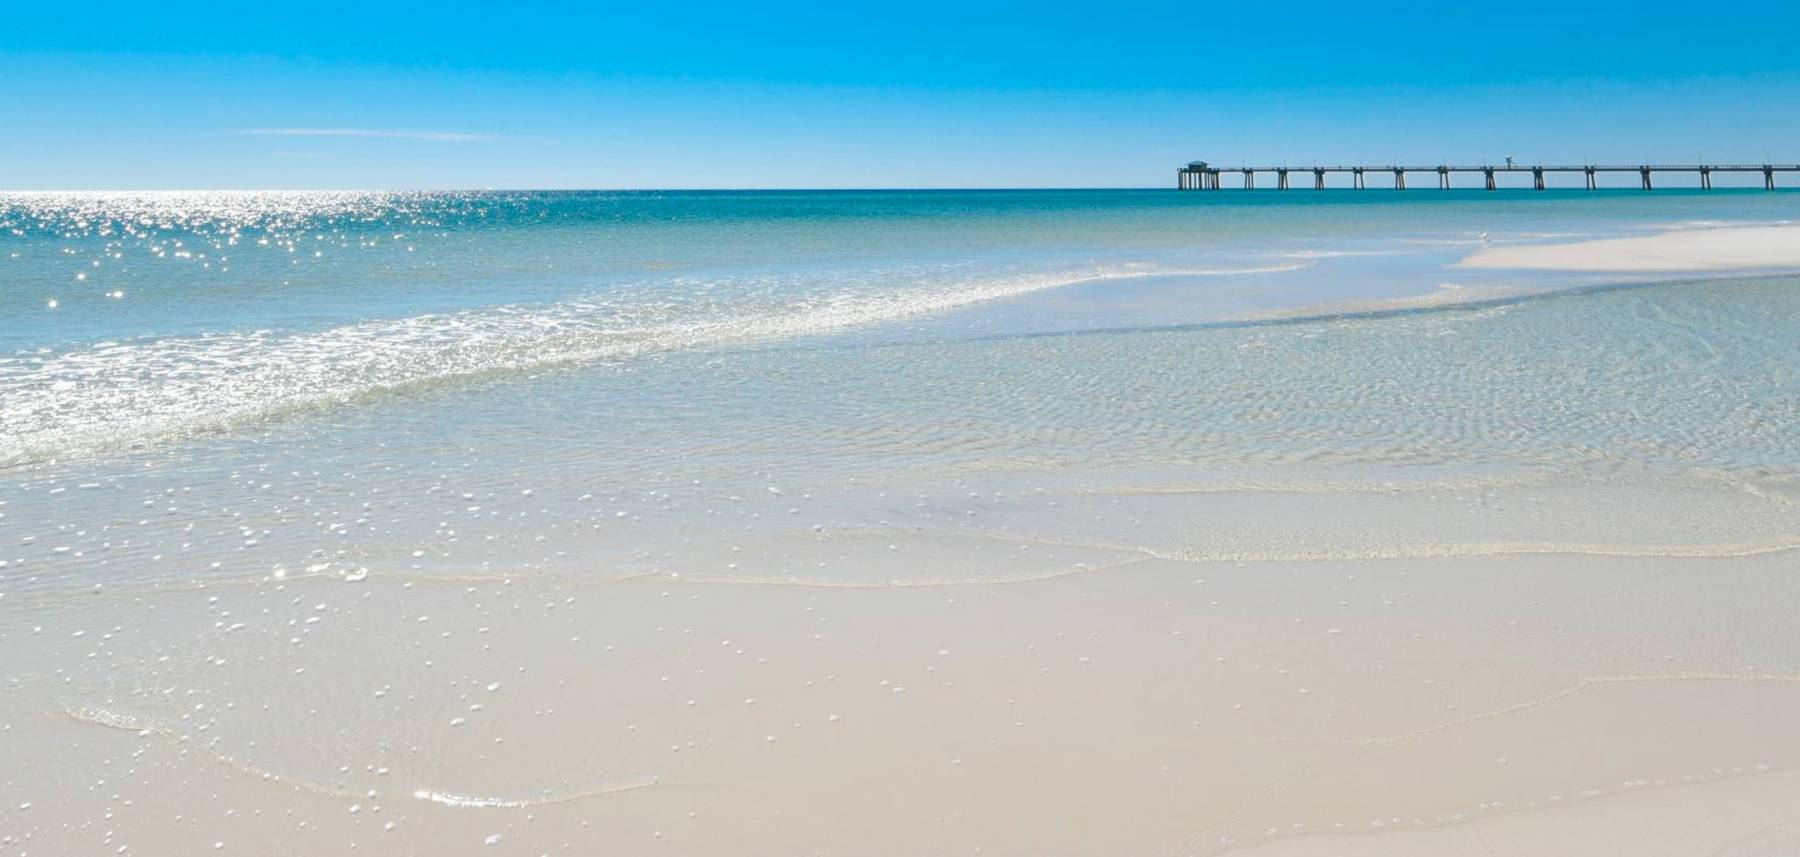 Compass Resorts  Vacation Rentals in Destin  the Emerald